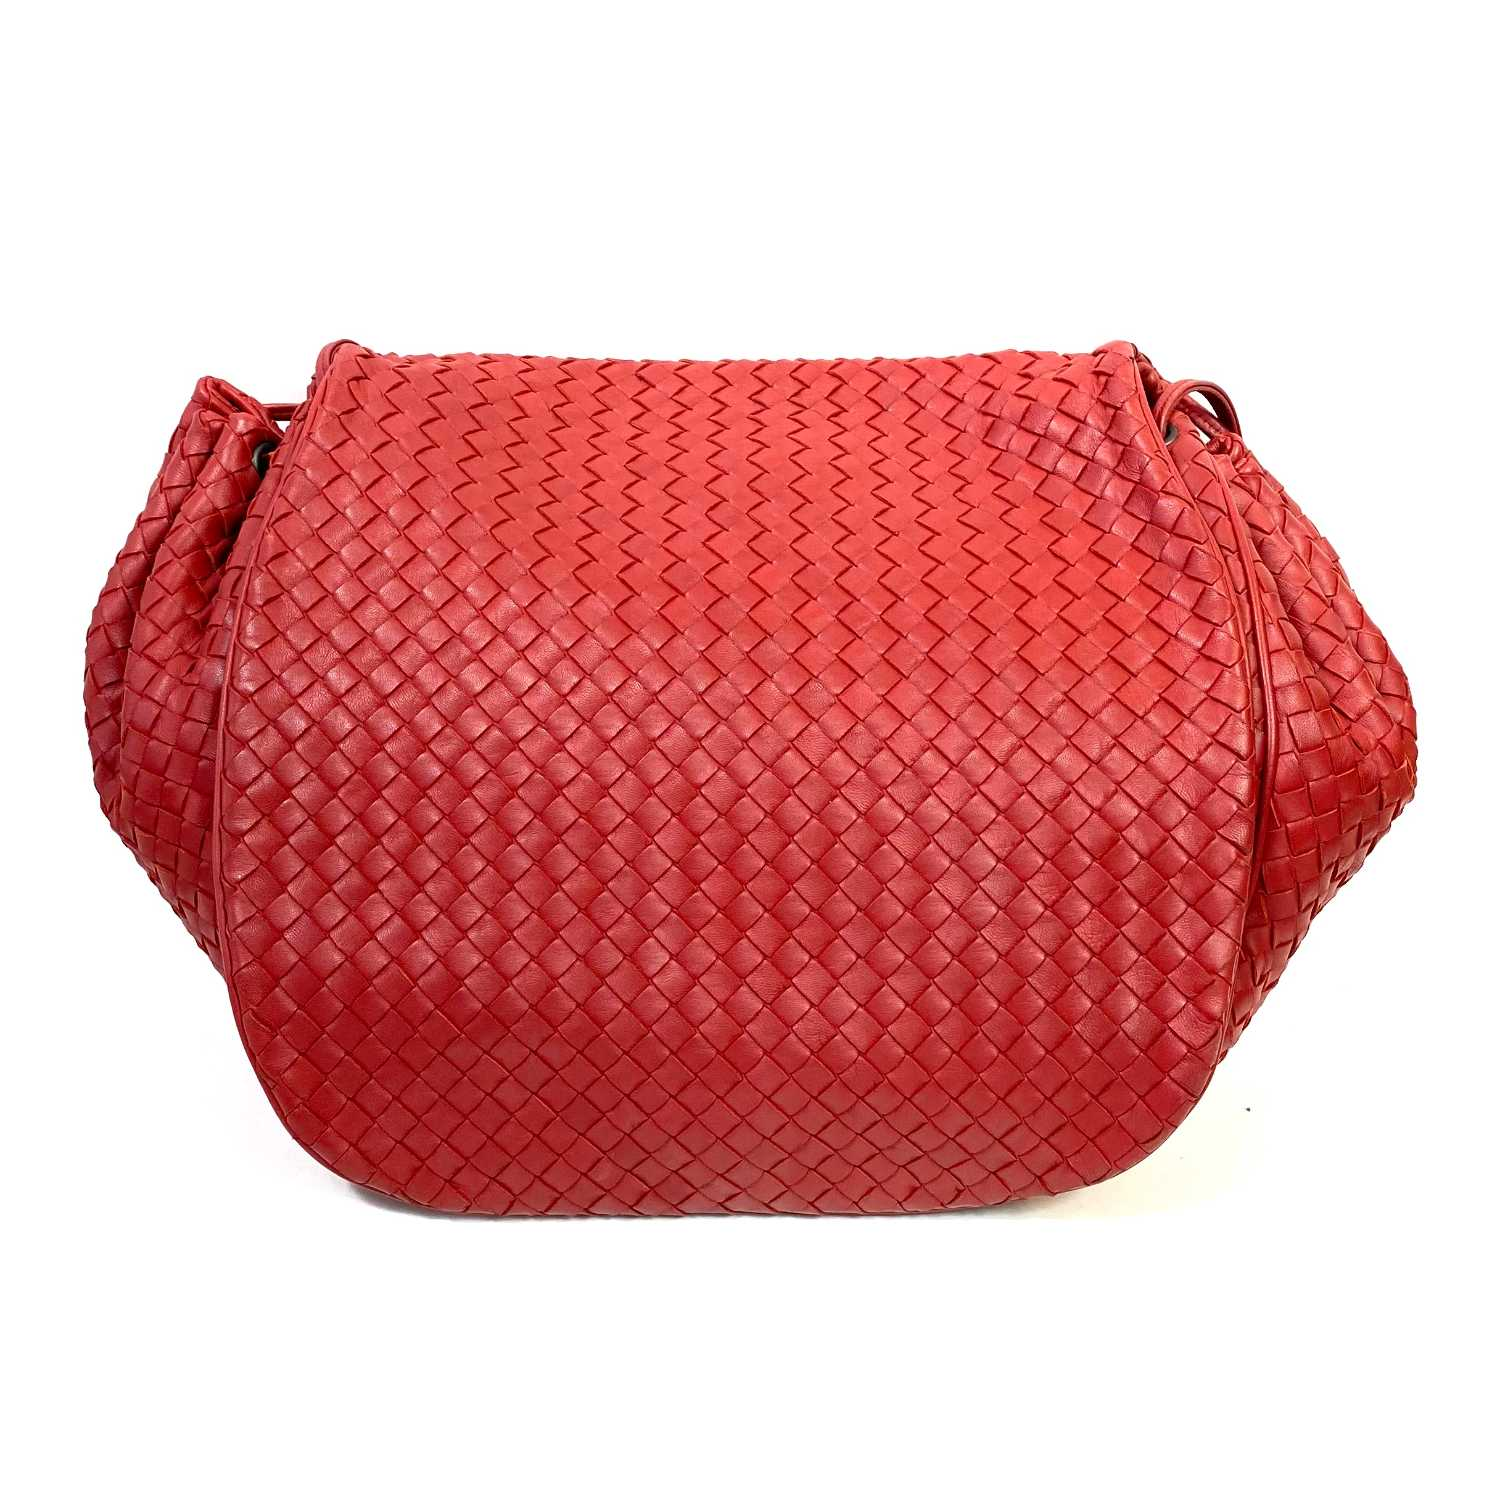 Bolsa Bottega Veneta Accordion Vermelha